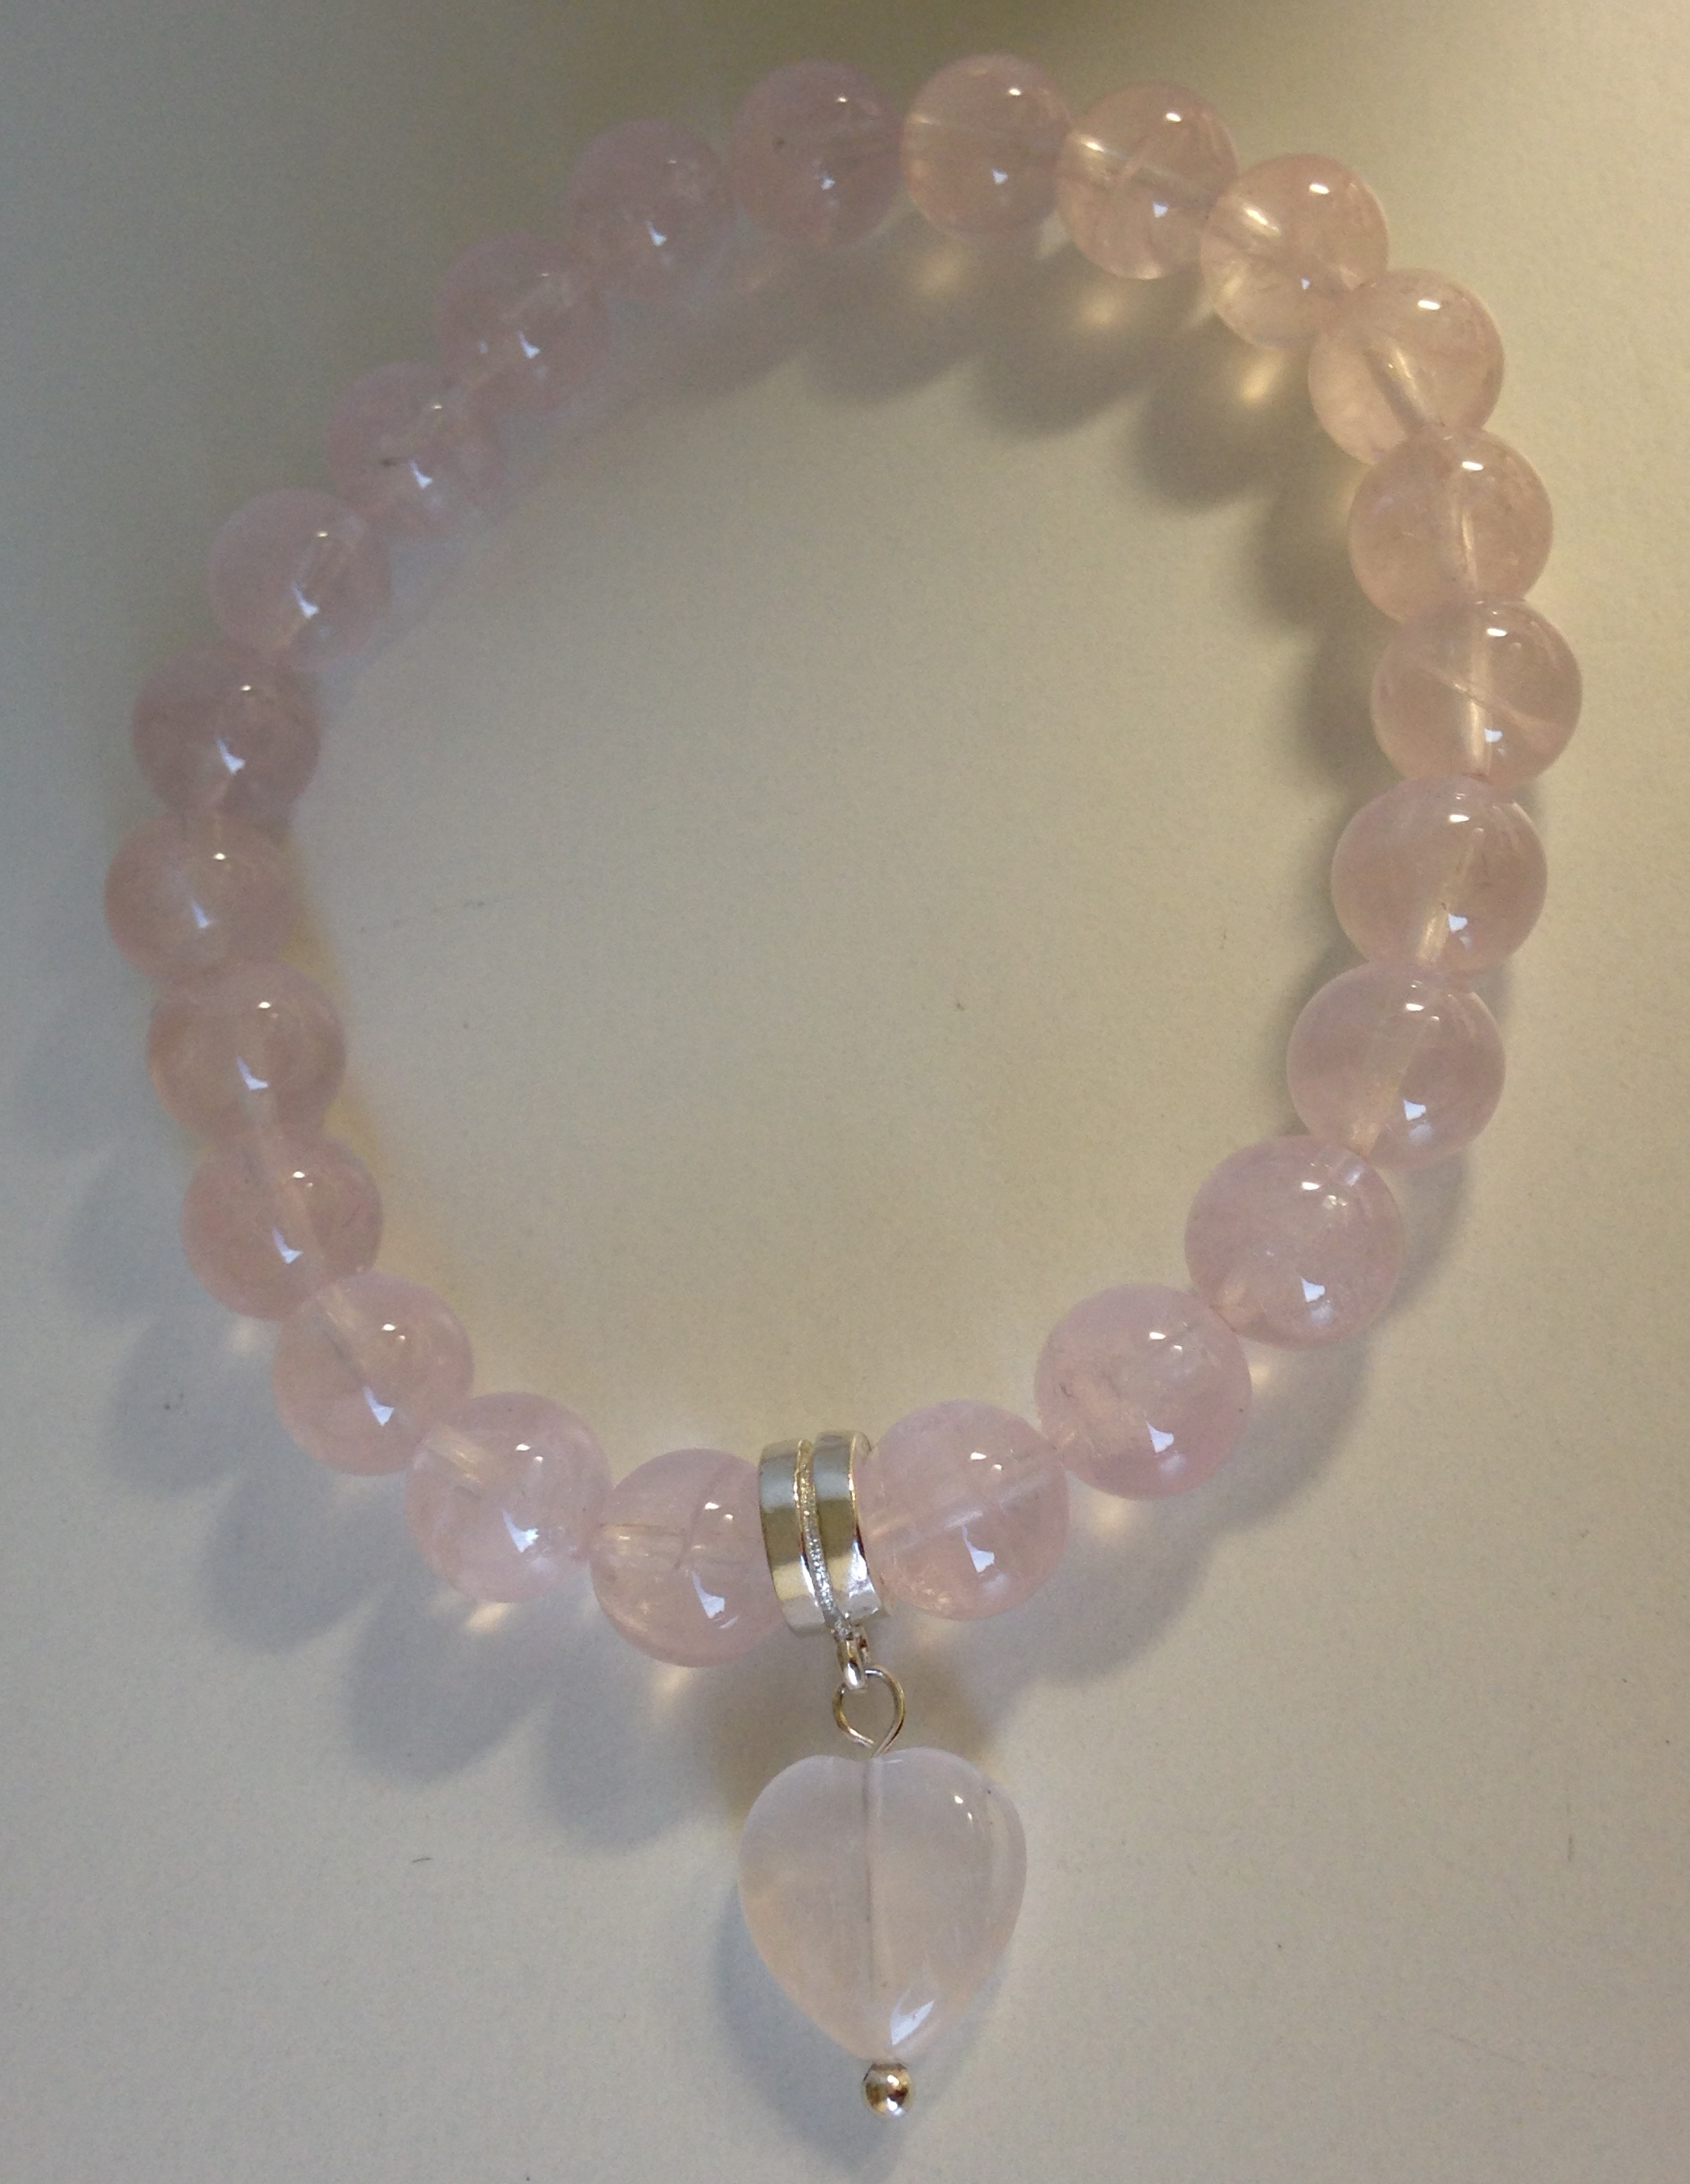 Rose Quartz Bracelet With Heart Charm Made By Marianne